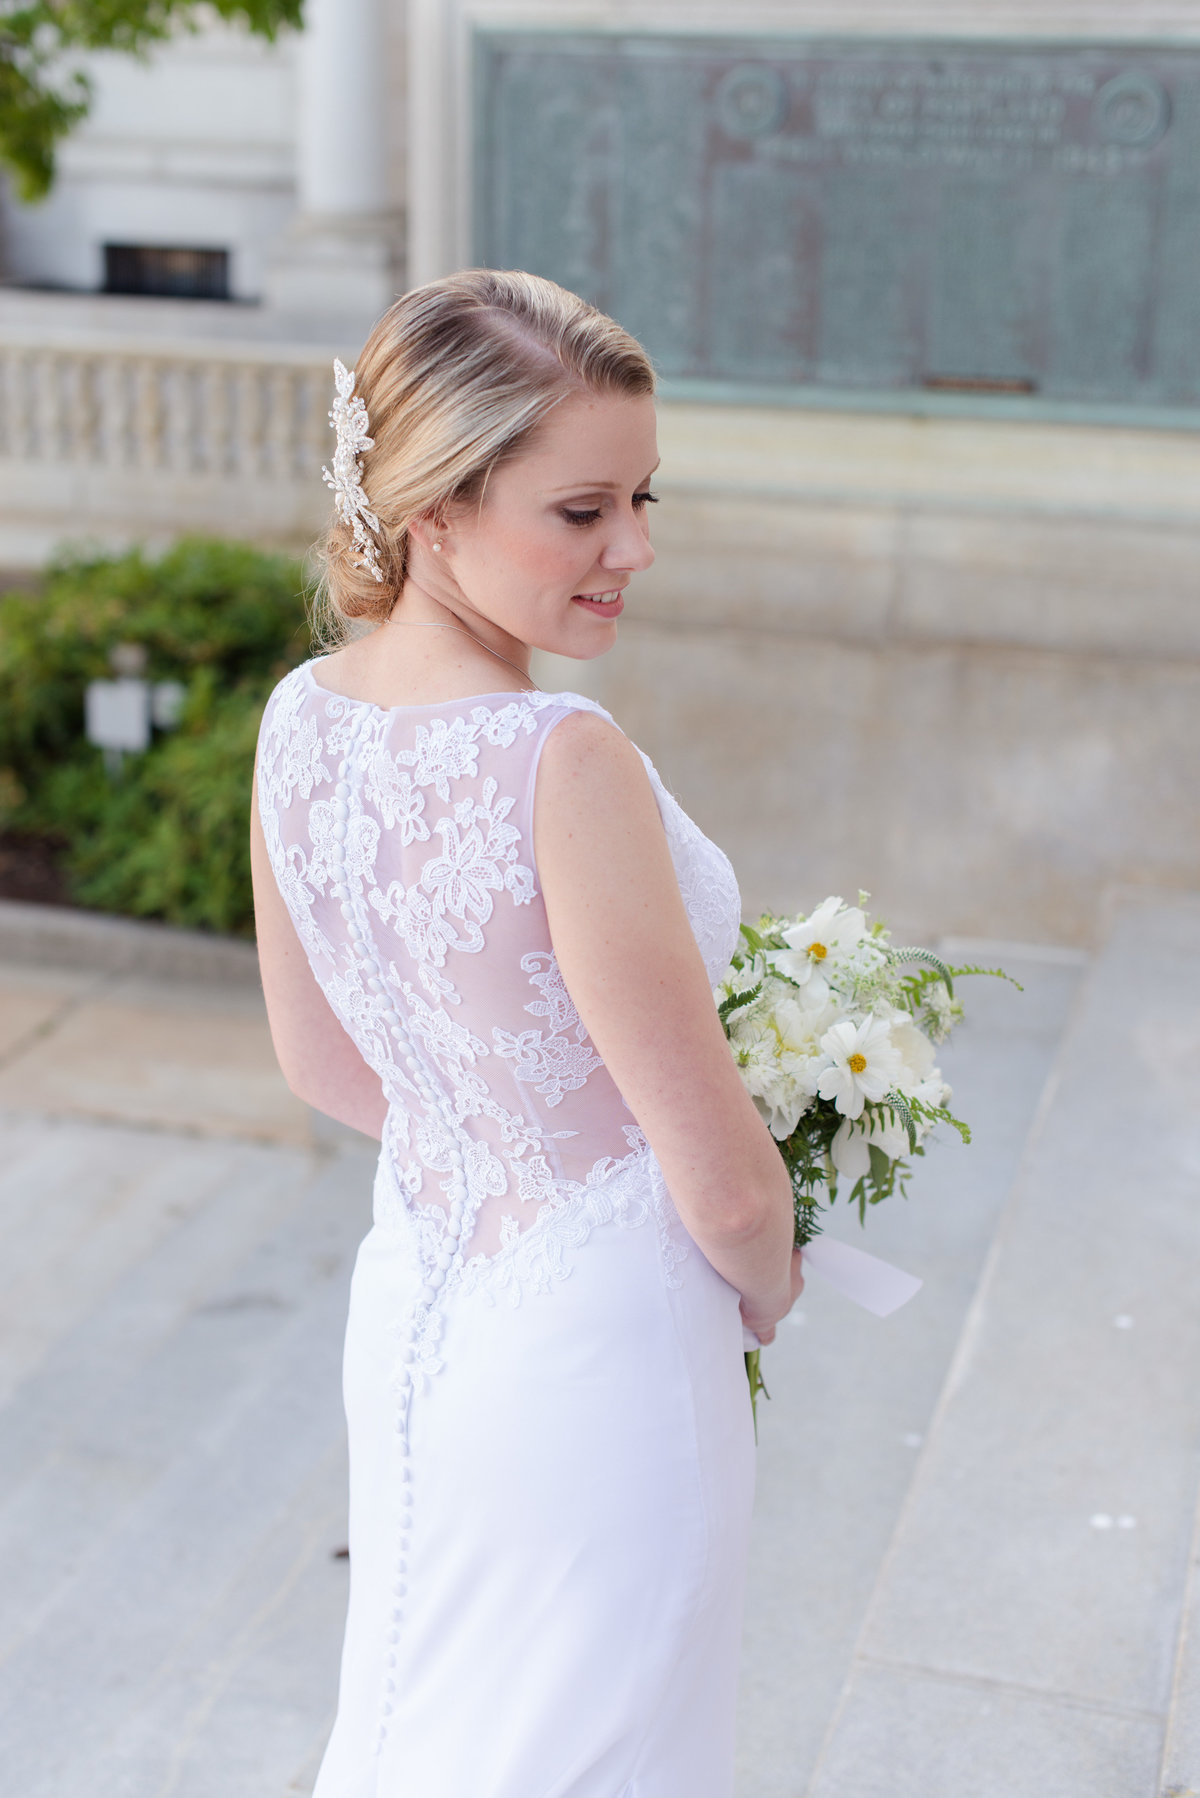 Portland City Hall Bridal Portrait by Linda Barry Photography